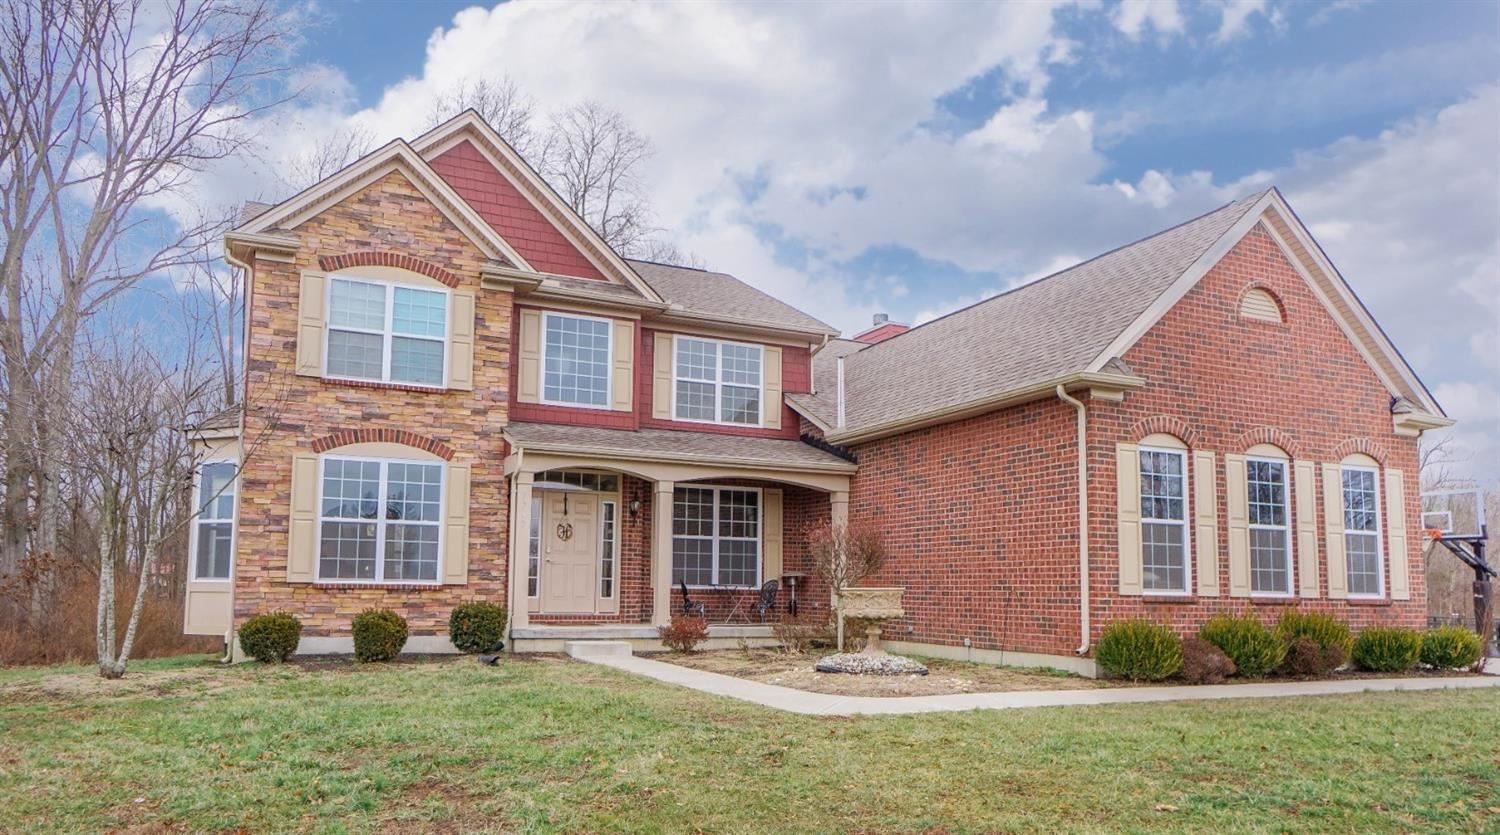 7710 Misty Meadows Court, Harlan Township, OH 45152 - #: 1650220